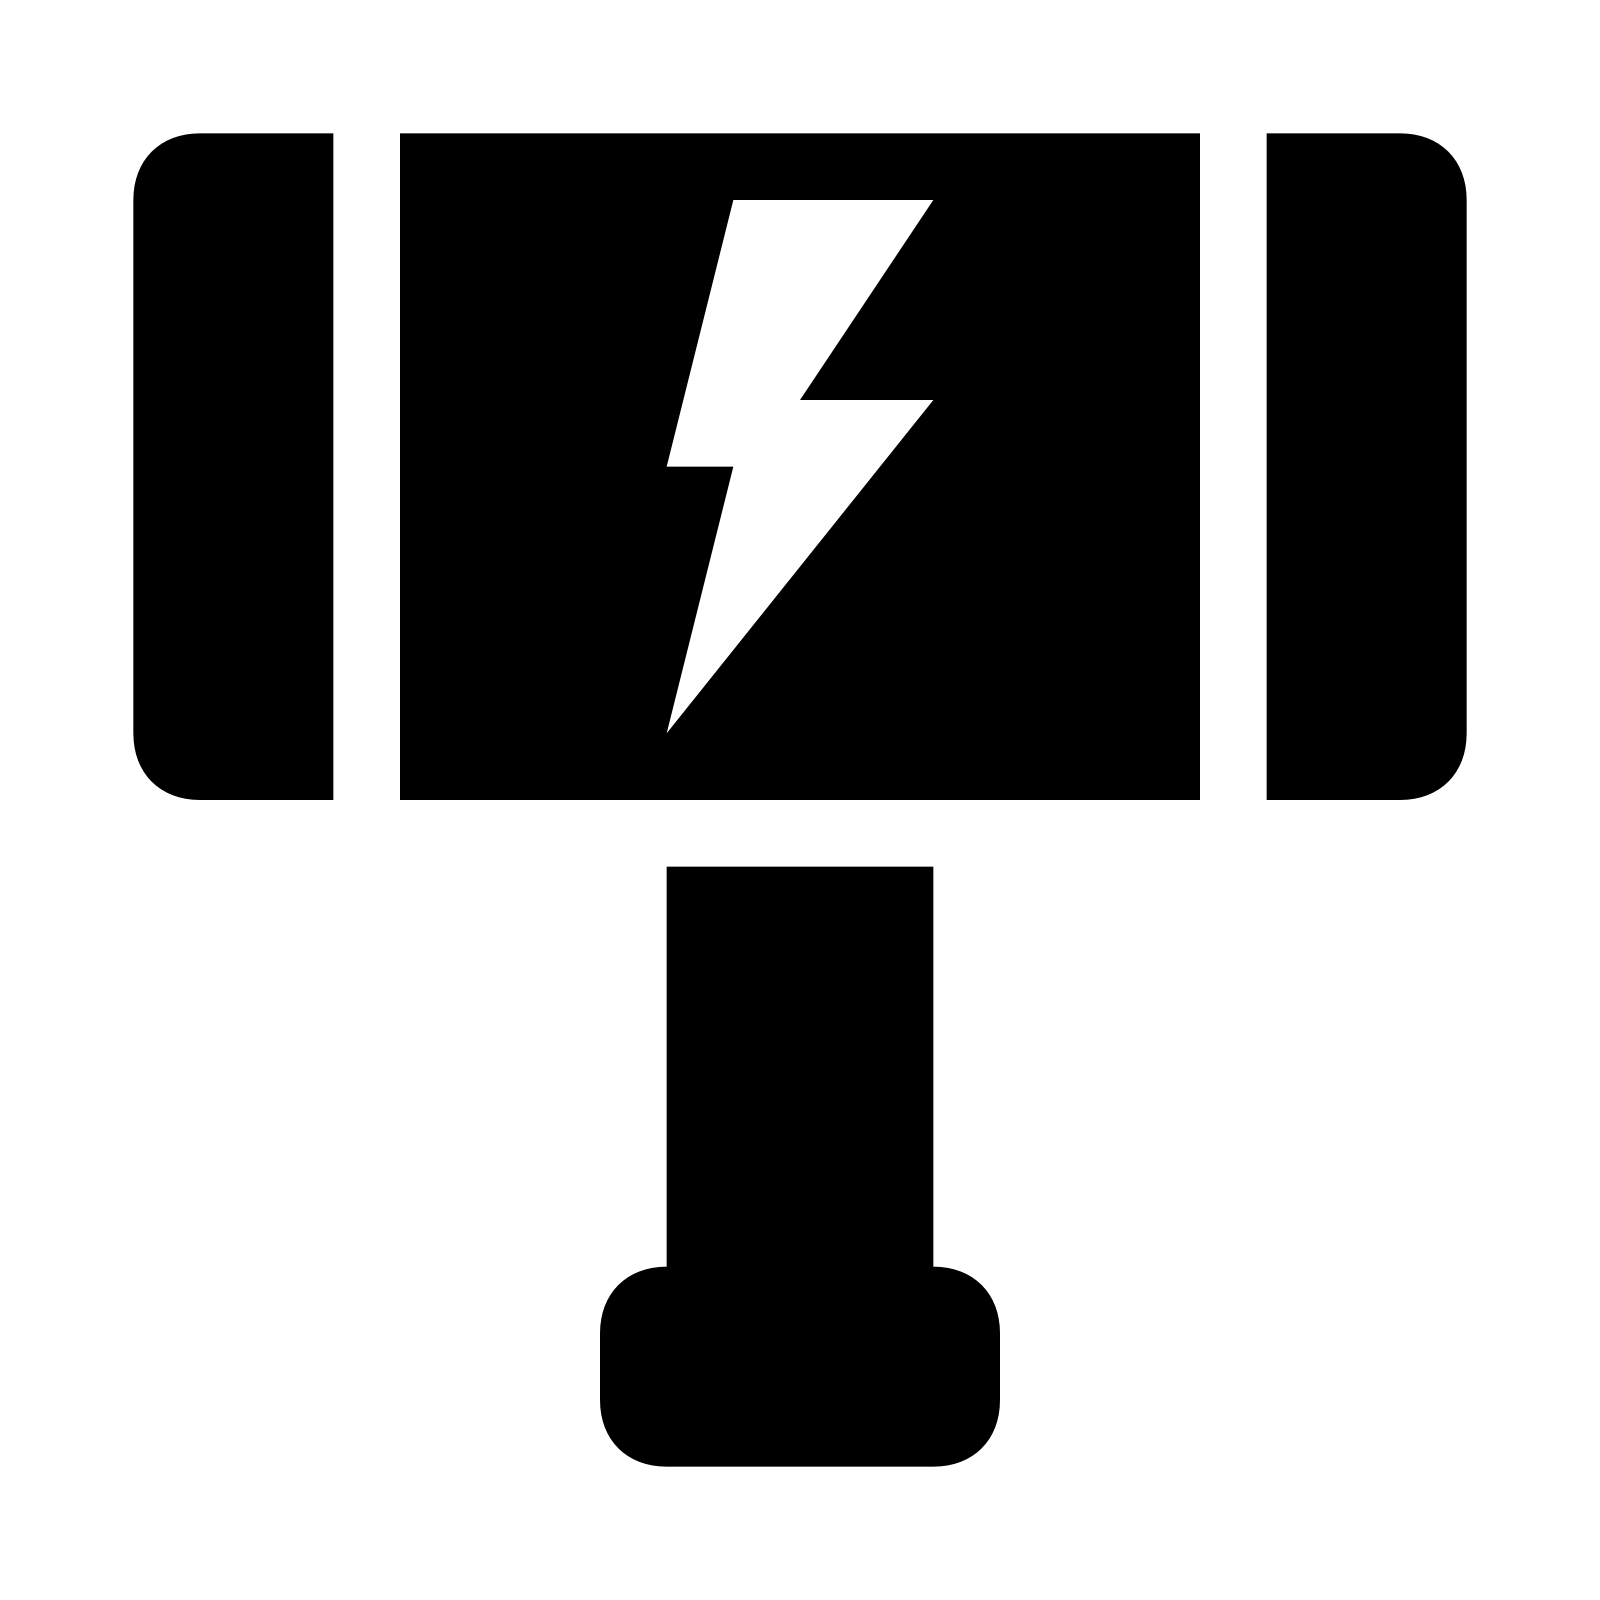 Weapon clipart thor At Thor Hammer Download Icons8